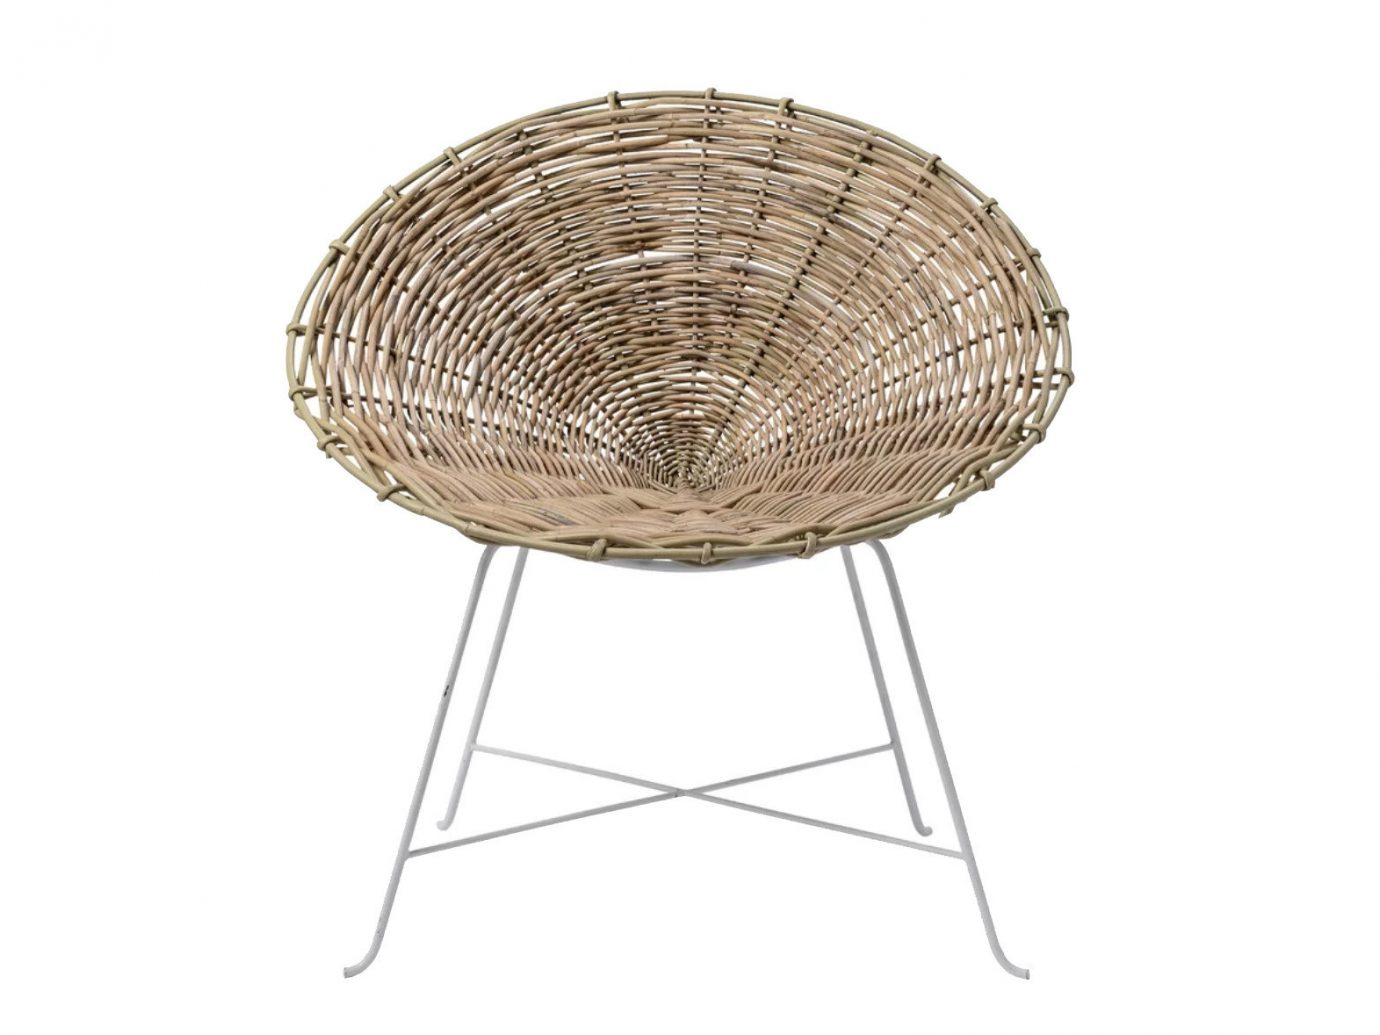 Amsterdam Style + Design The Netherlands Travel Shop basket wicker furniture container table product design product storage basket chair